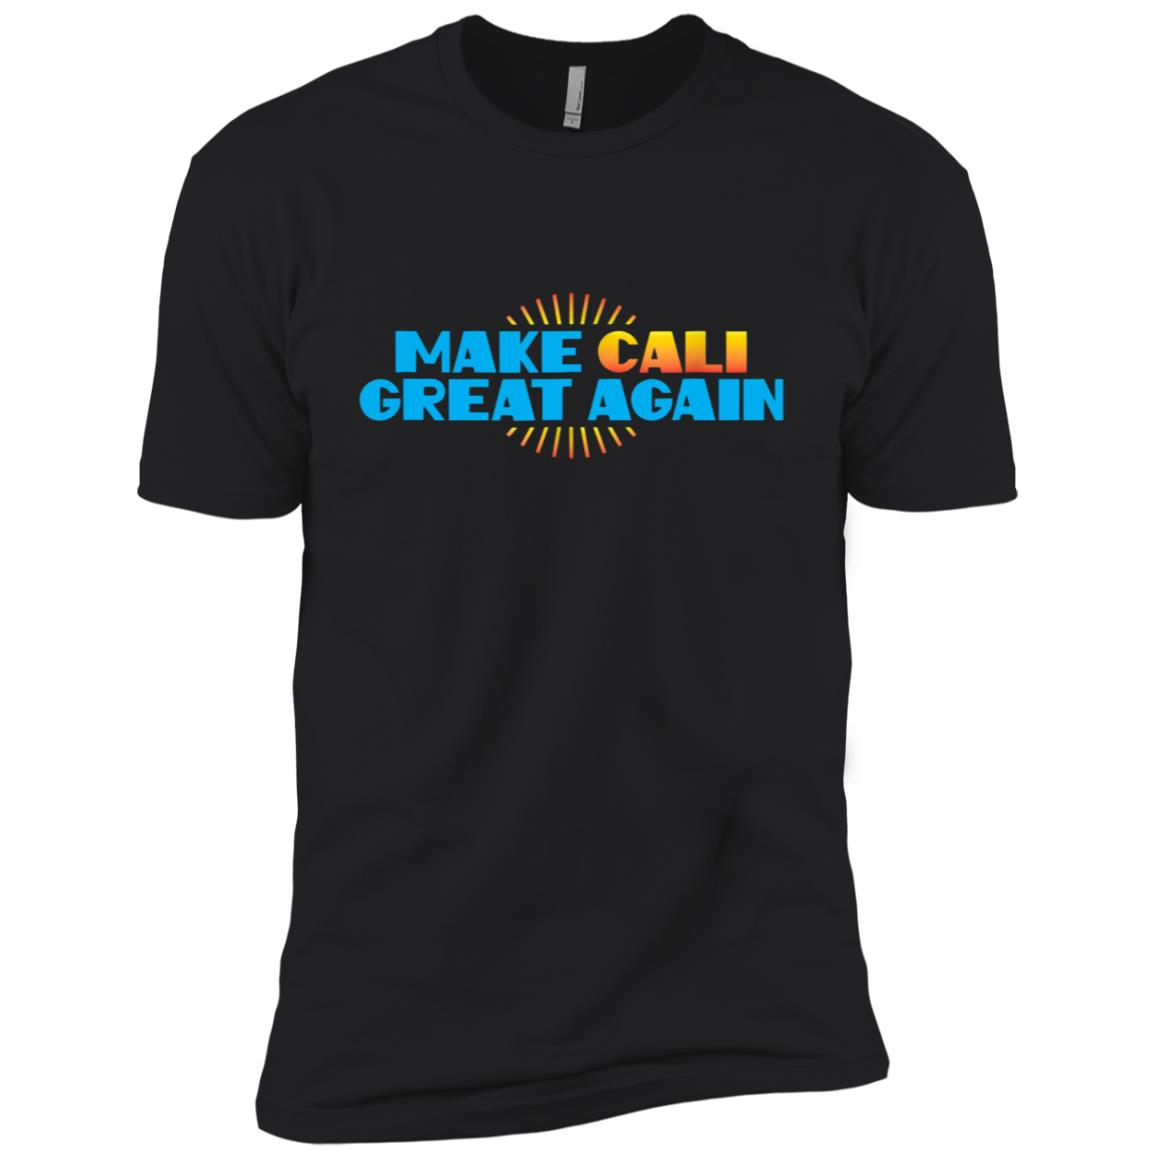 Make Cali Great Again US Event Rally Protest March Men Short Sleeve T-Shirt